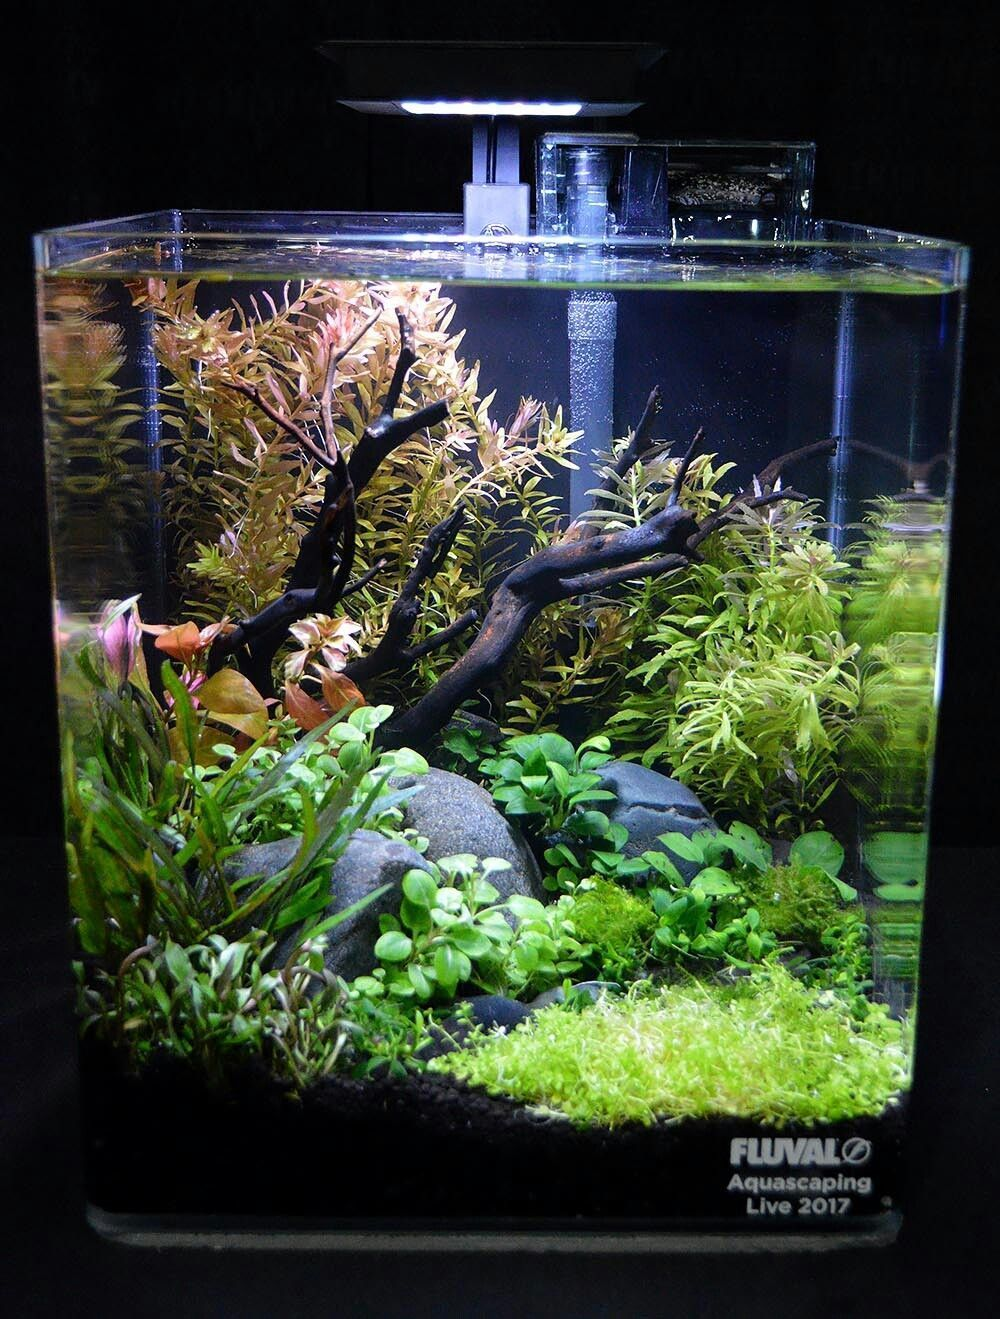 lovely aquascaping in this small fish tank waterplantsaquarium